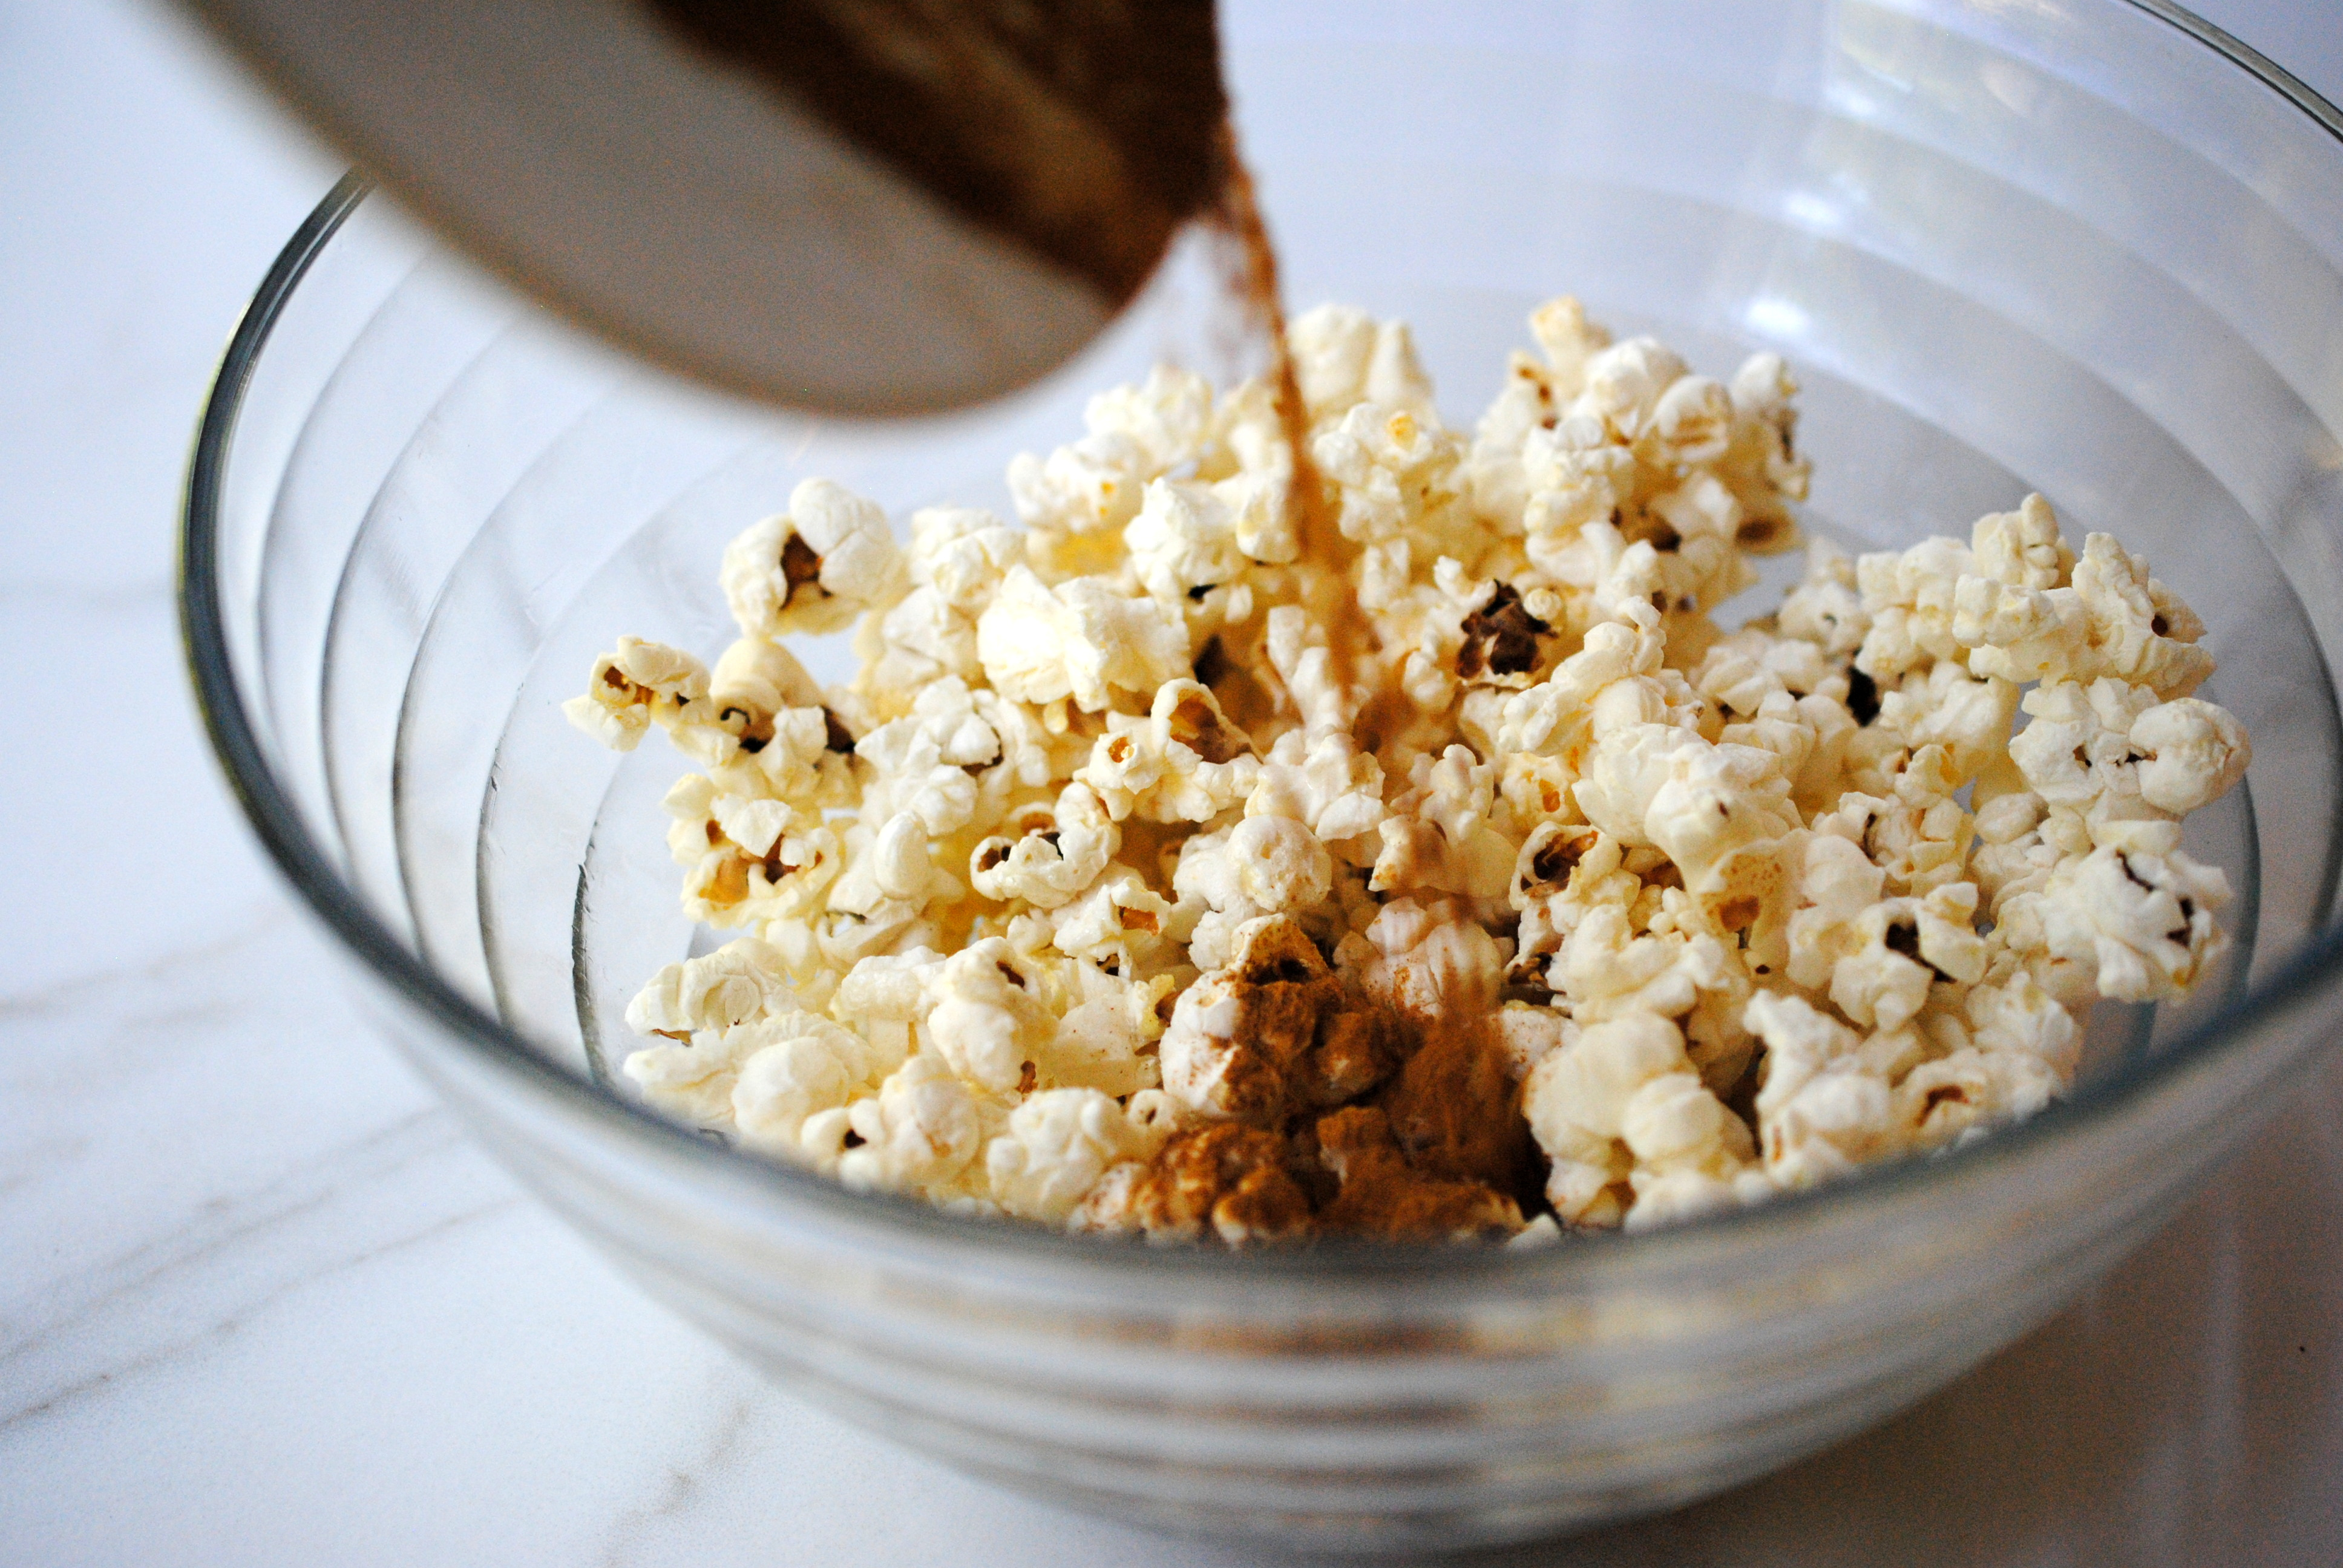 Adding spices to popcorn